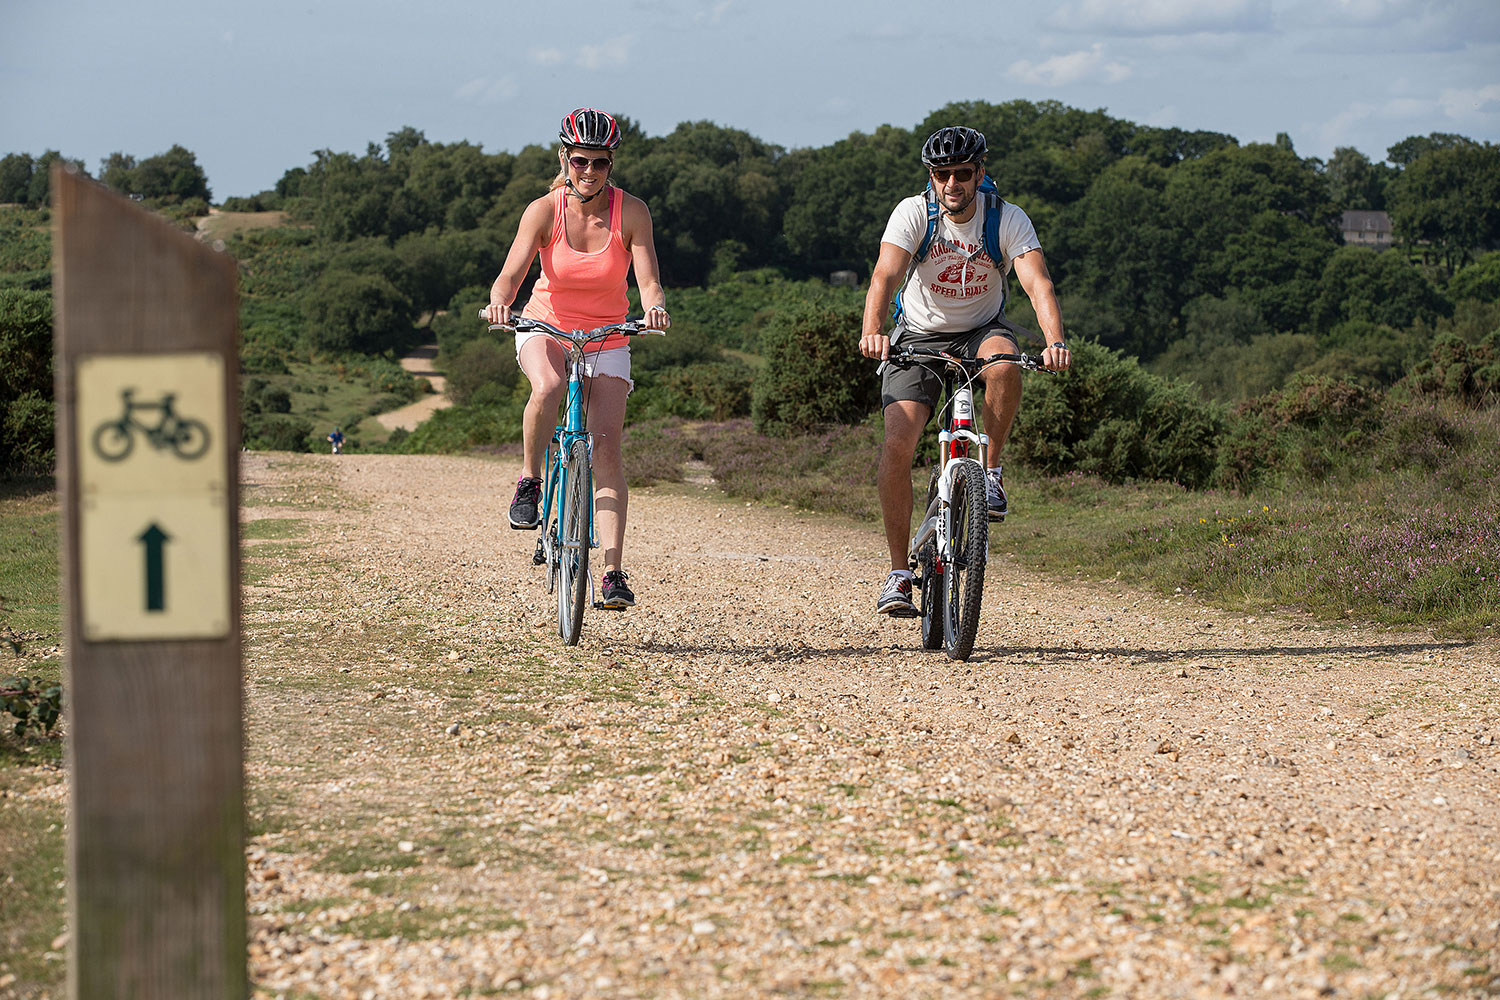 Looking for activities for couples? Hire some bikes and explore The New Forest.